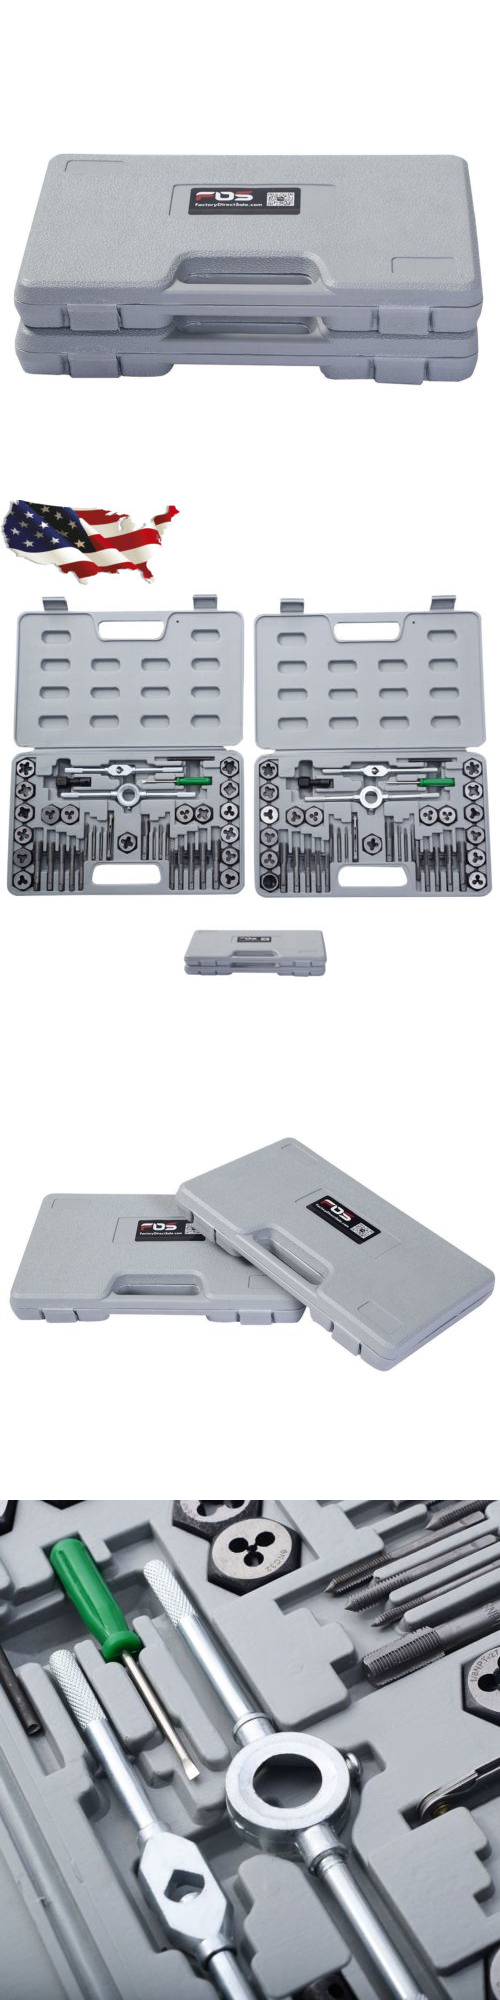 Taps and dies cases hand tools pieces tap hex die tool kit